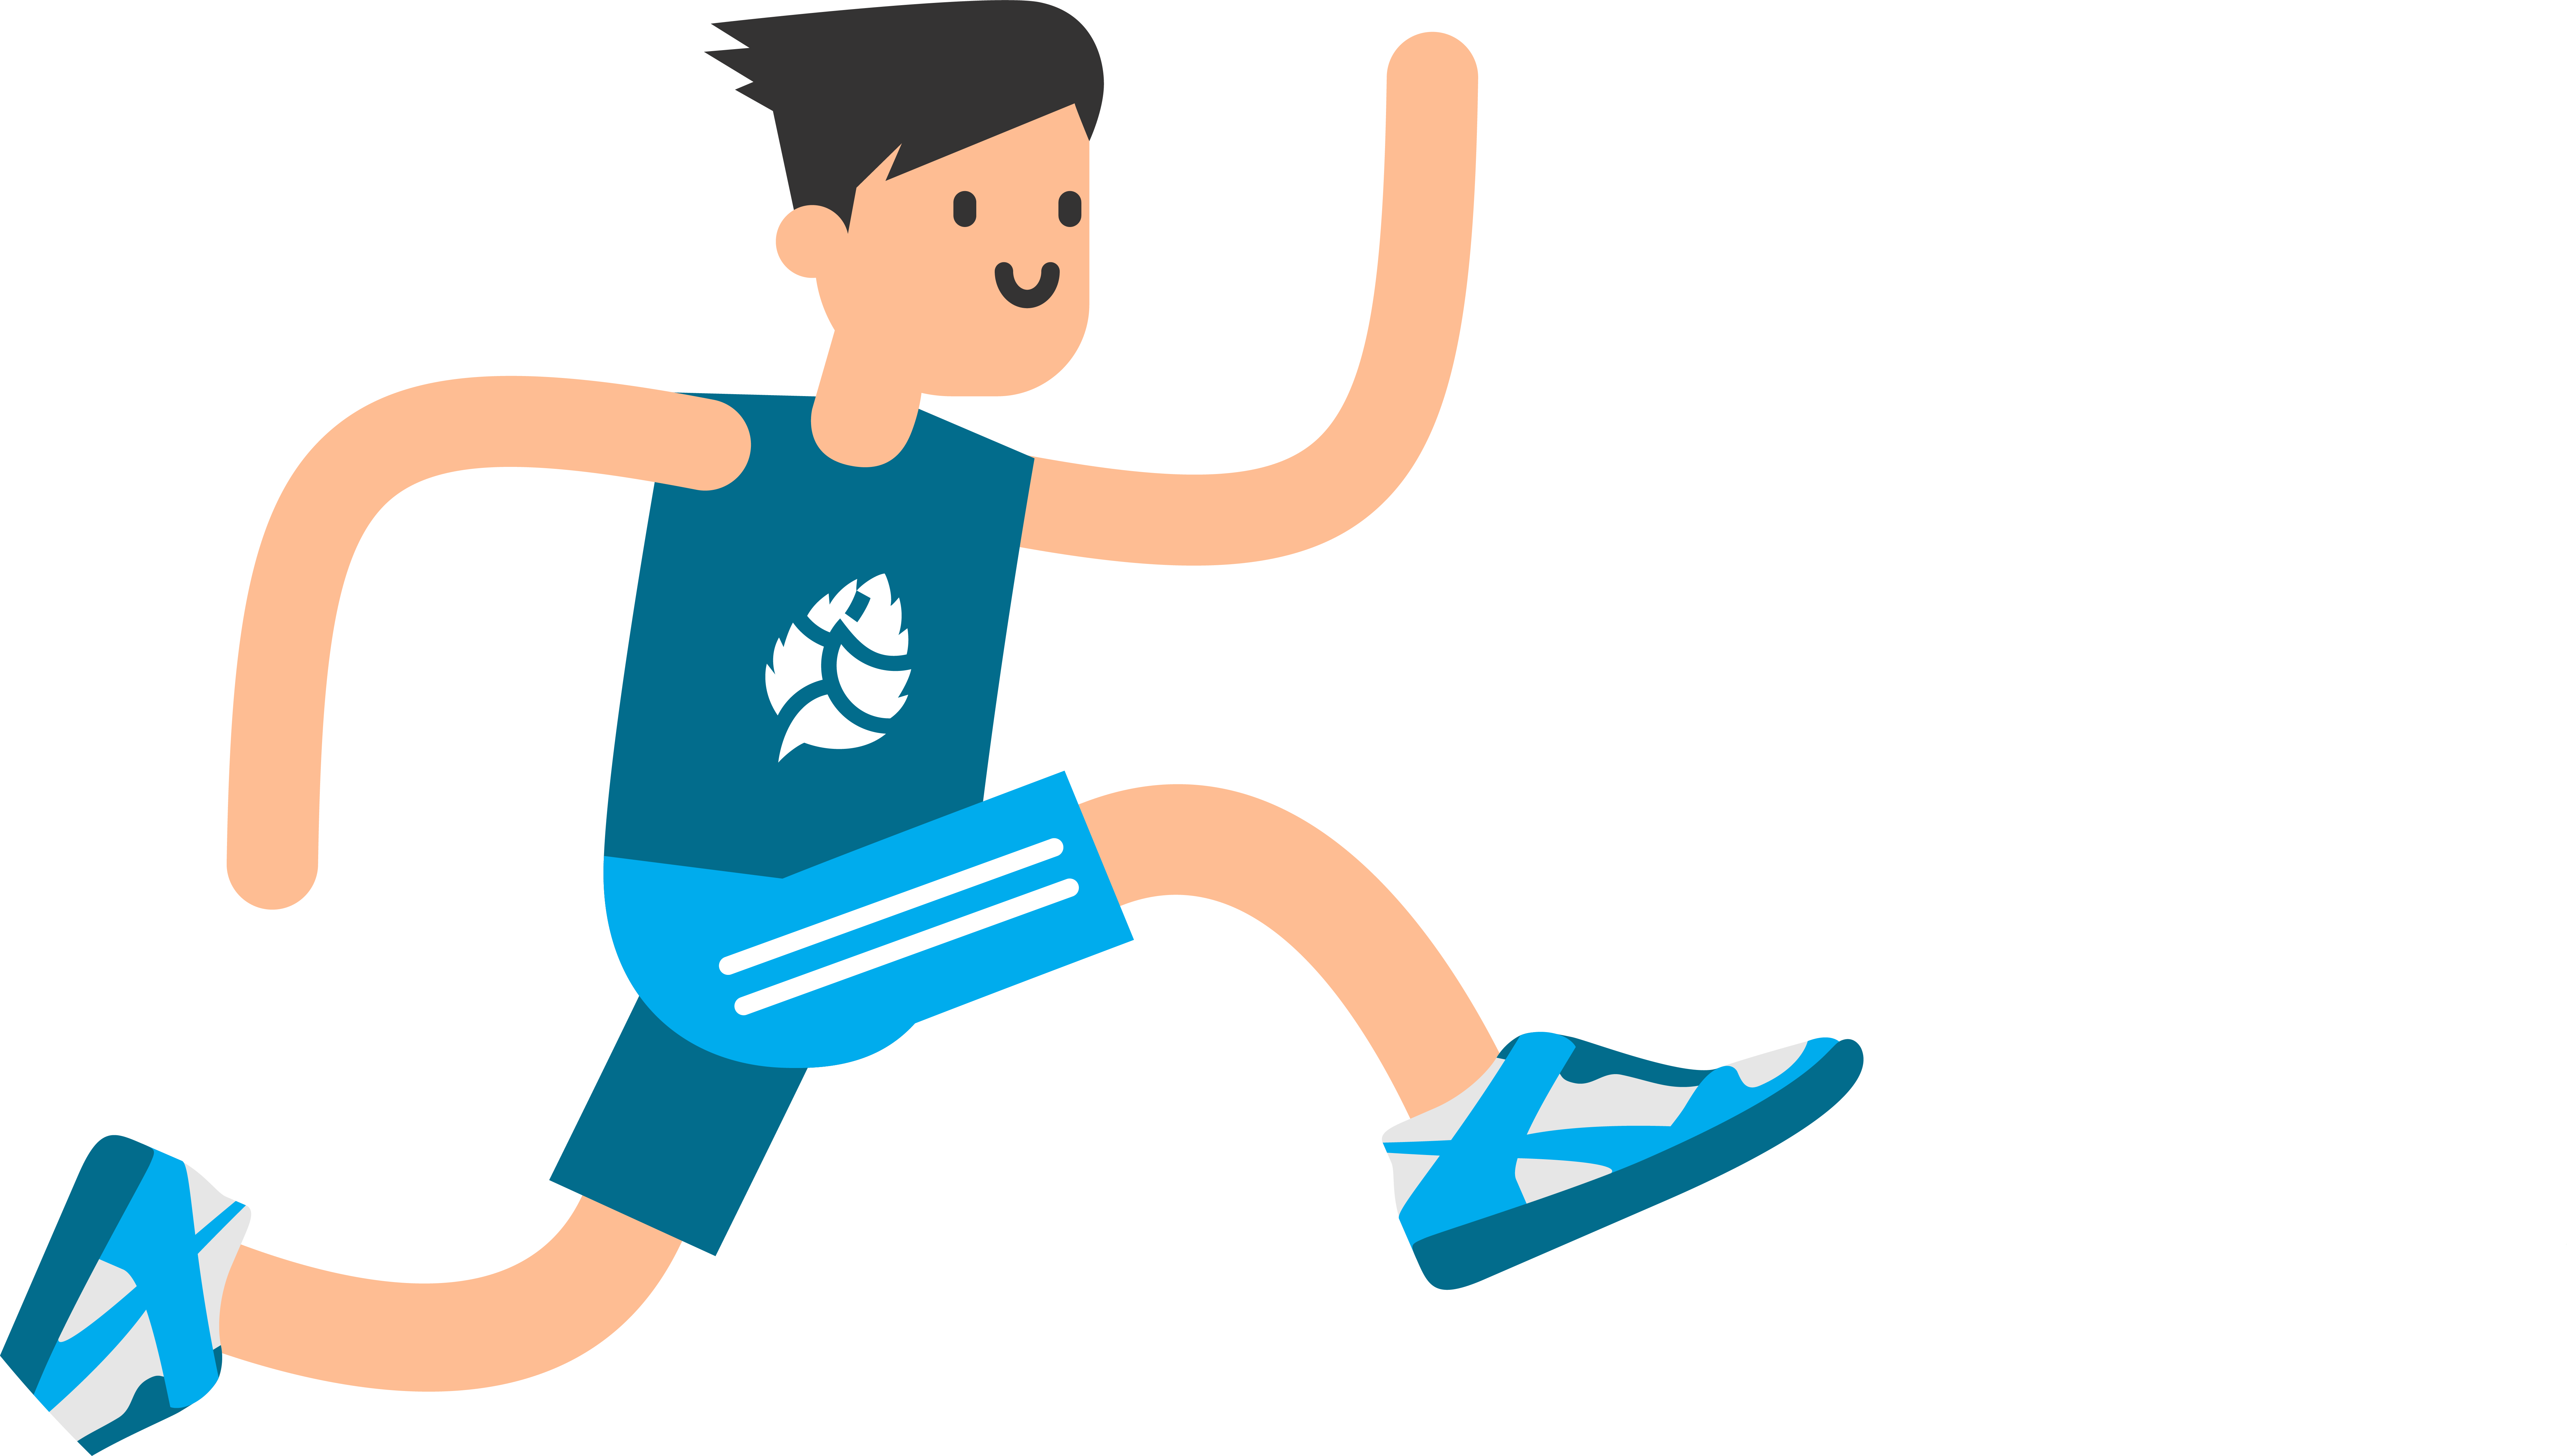 Jumping clipart athletic person. Running boy transprent png